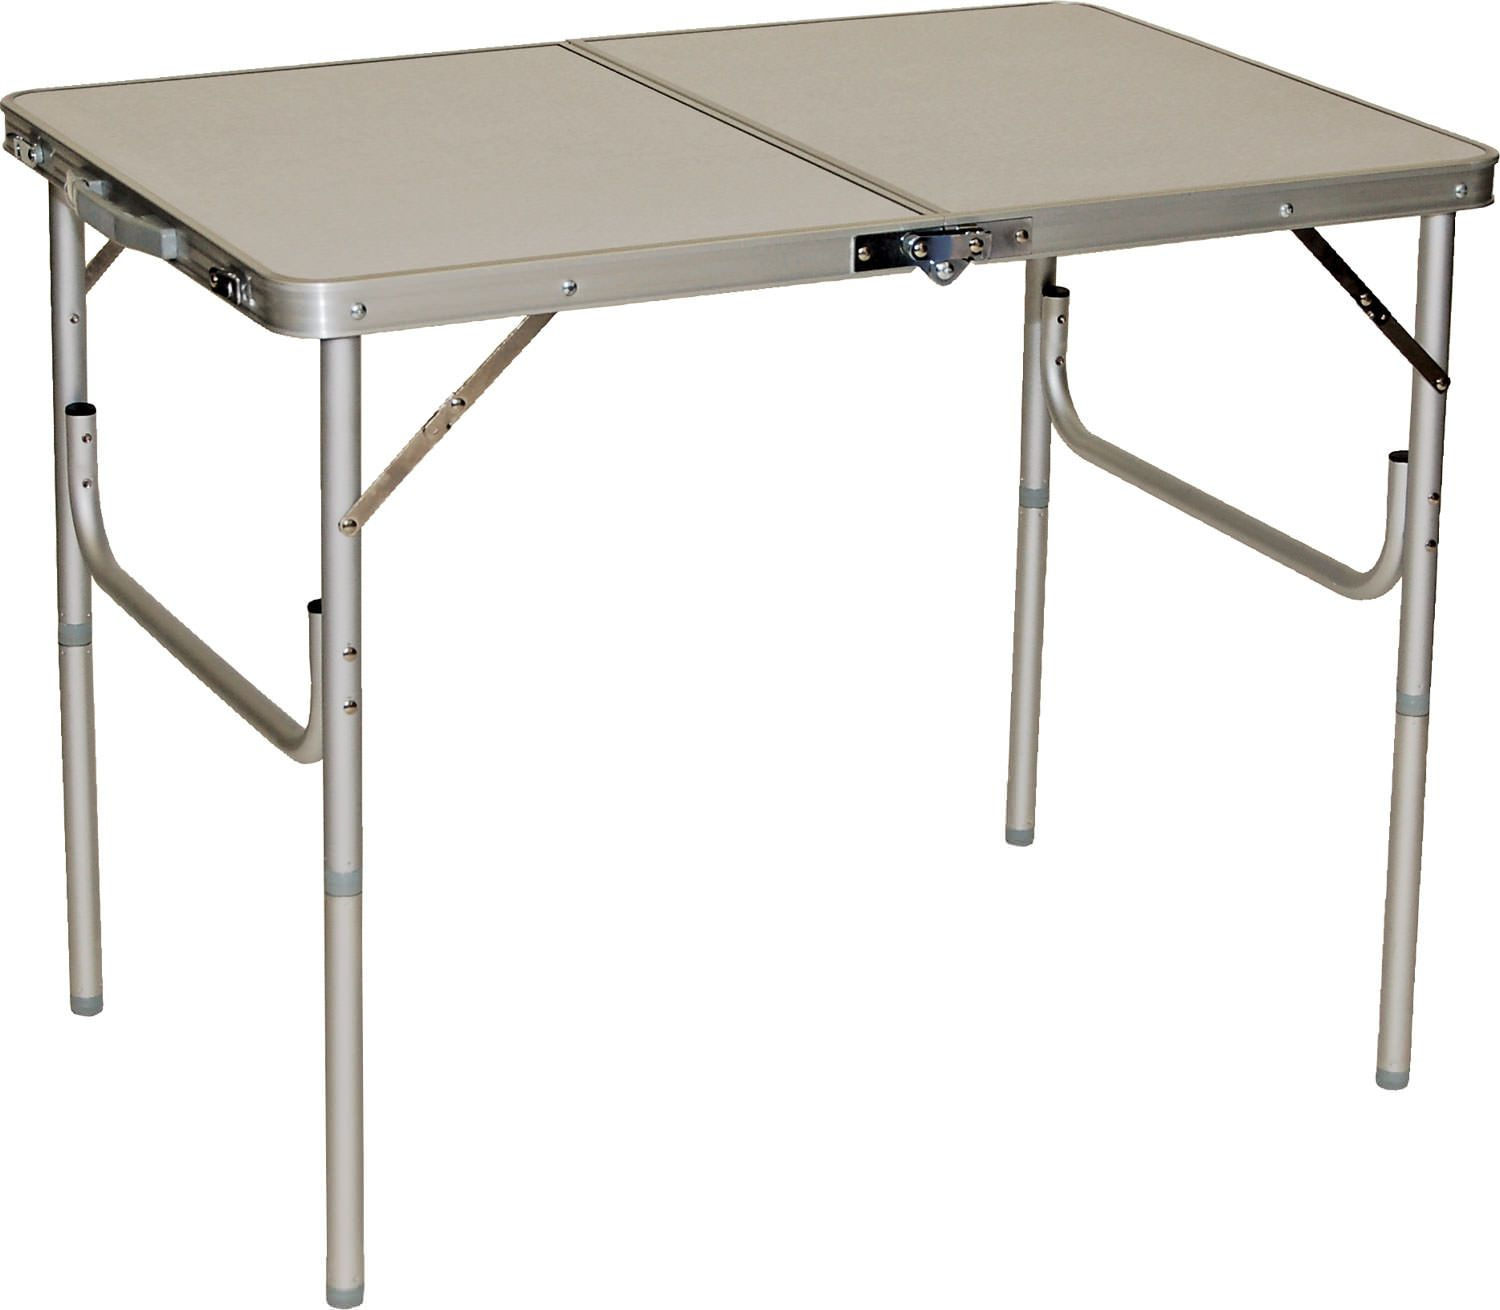 3 Fold N Half Aluminum Table